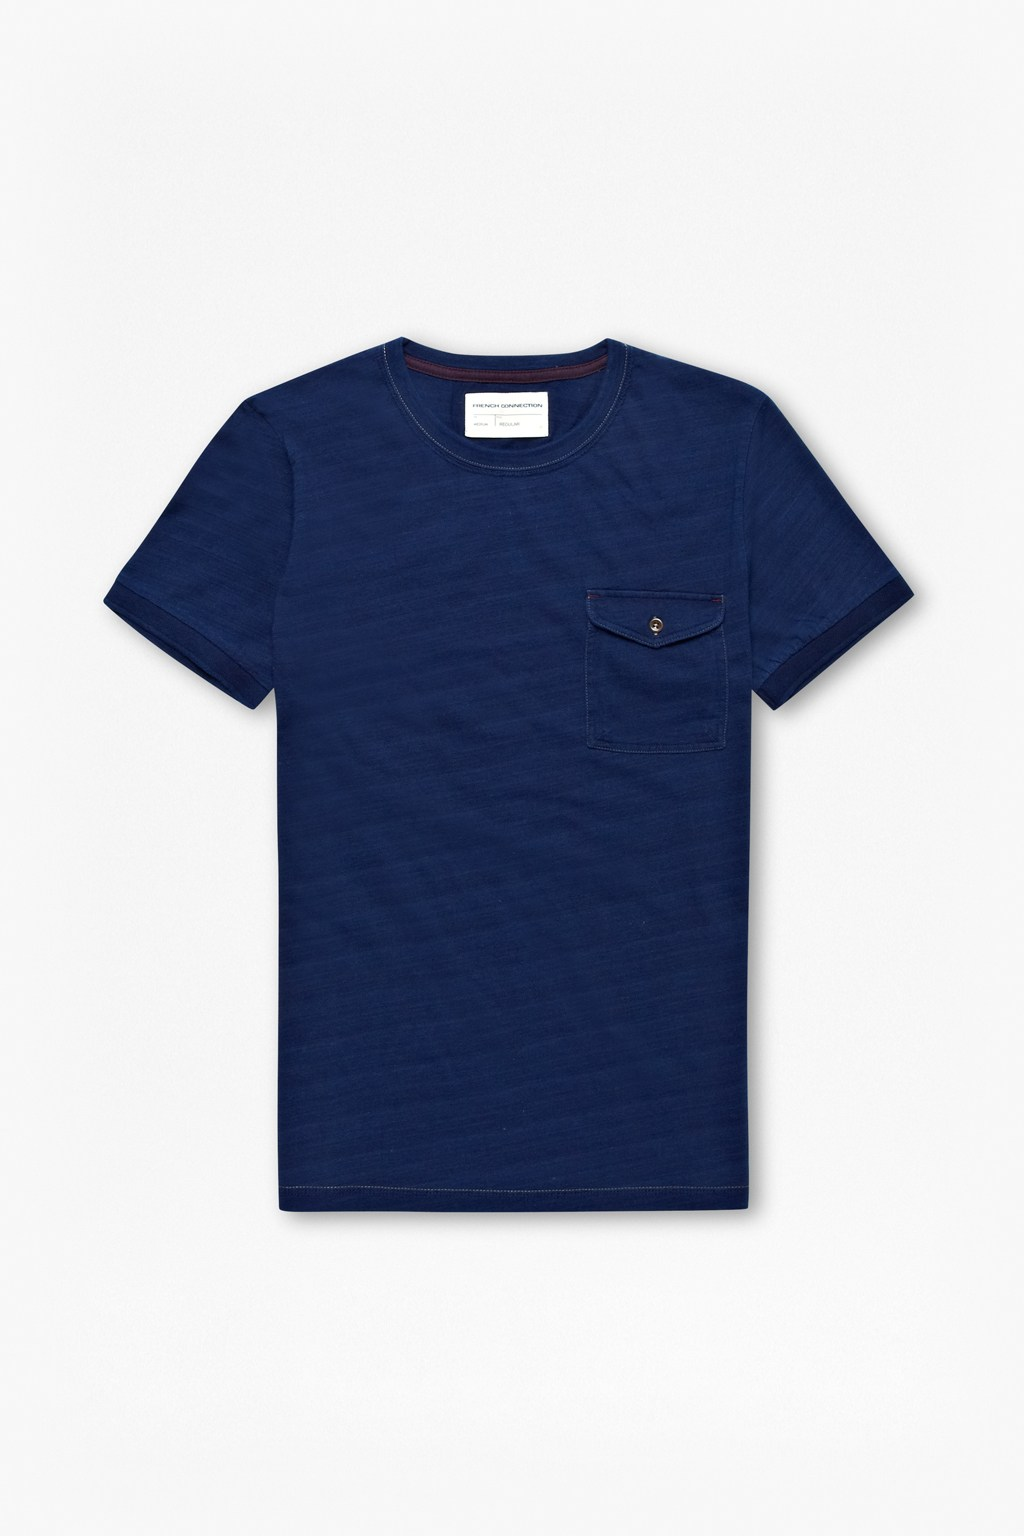 Indigo Jersey T-Shirt : Collections : French Connection